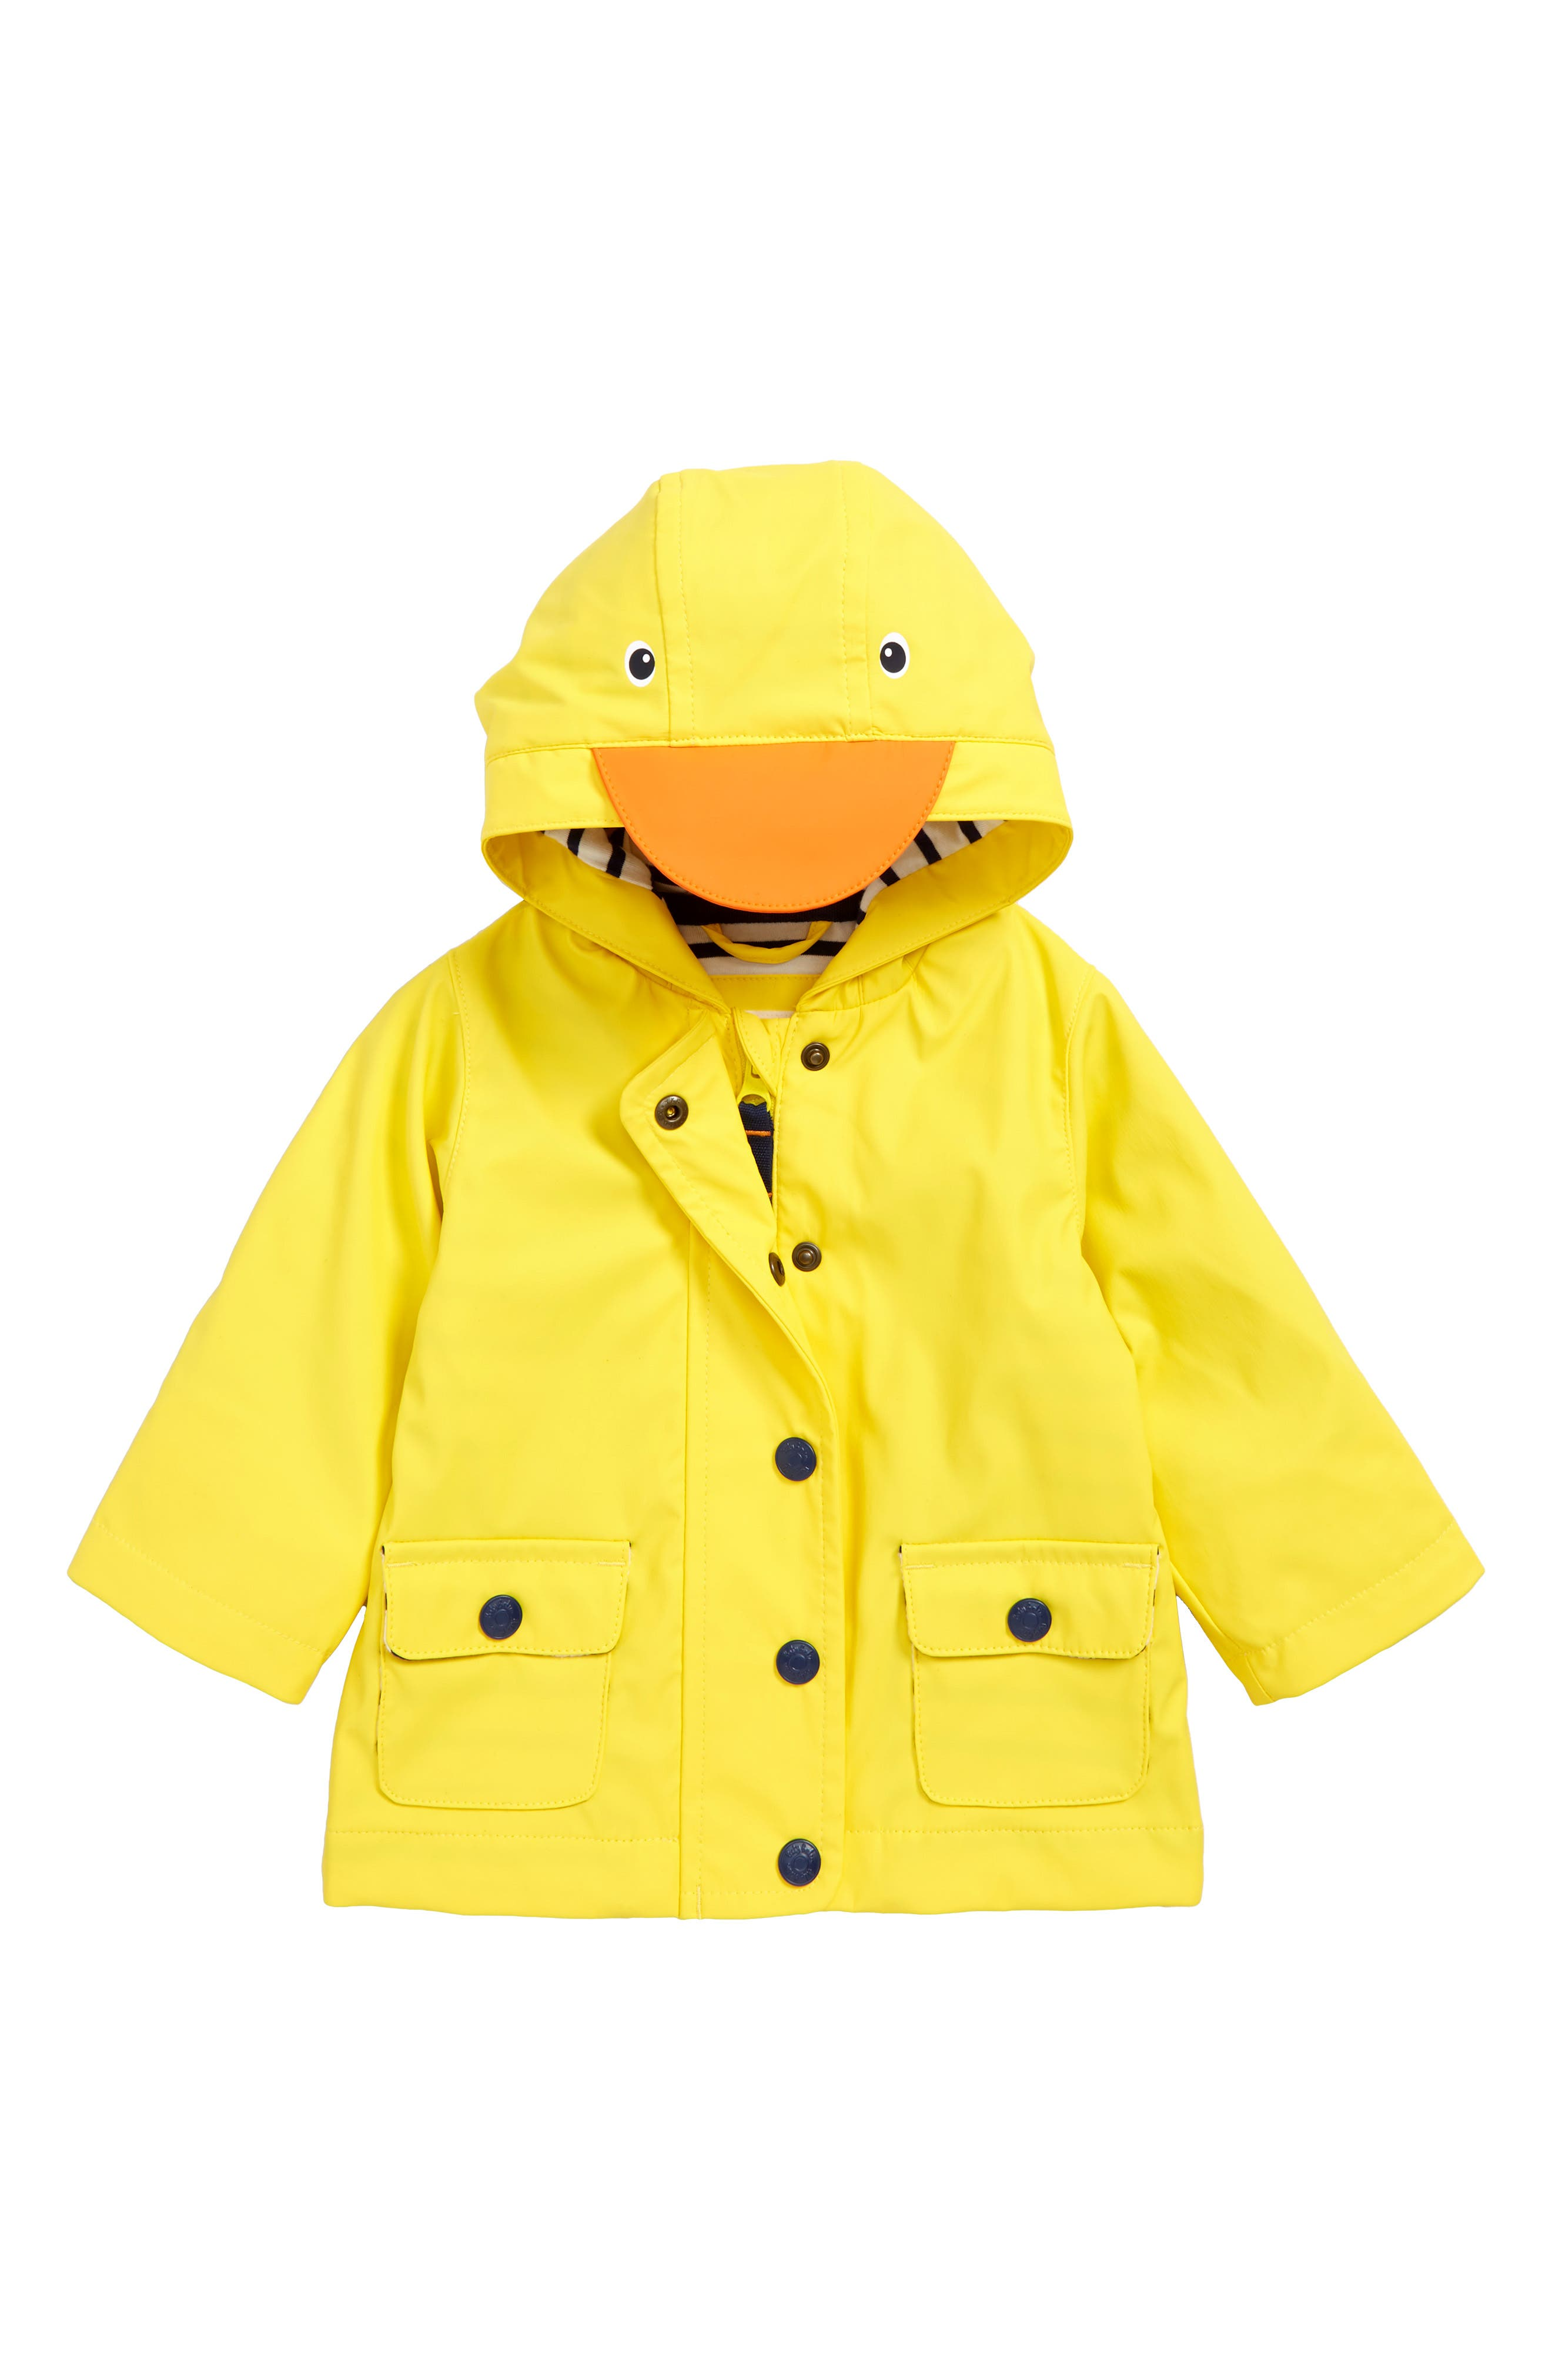 Duck Water Resistant Hooded Raincoat,                             Main thumbnail 1, color,                             SUNSHINE YELLOW DUCK